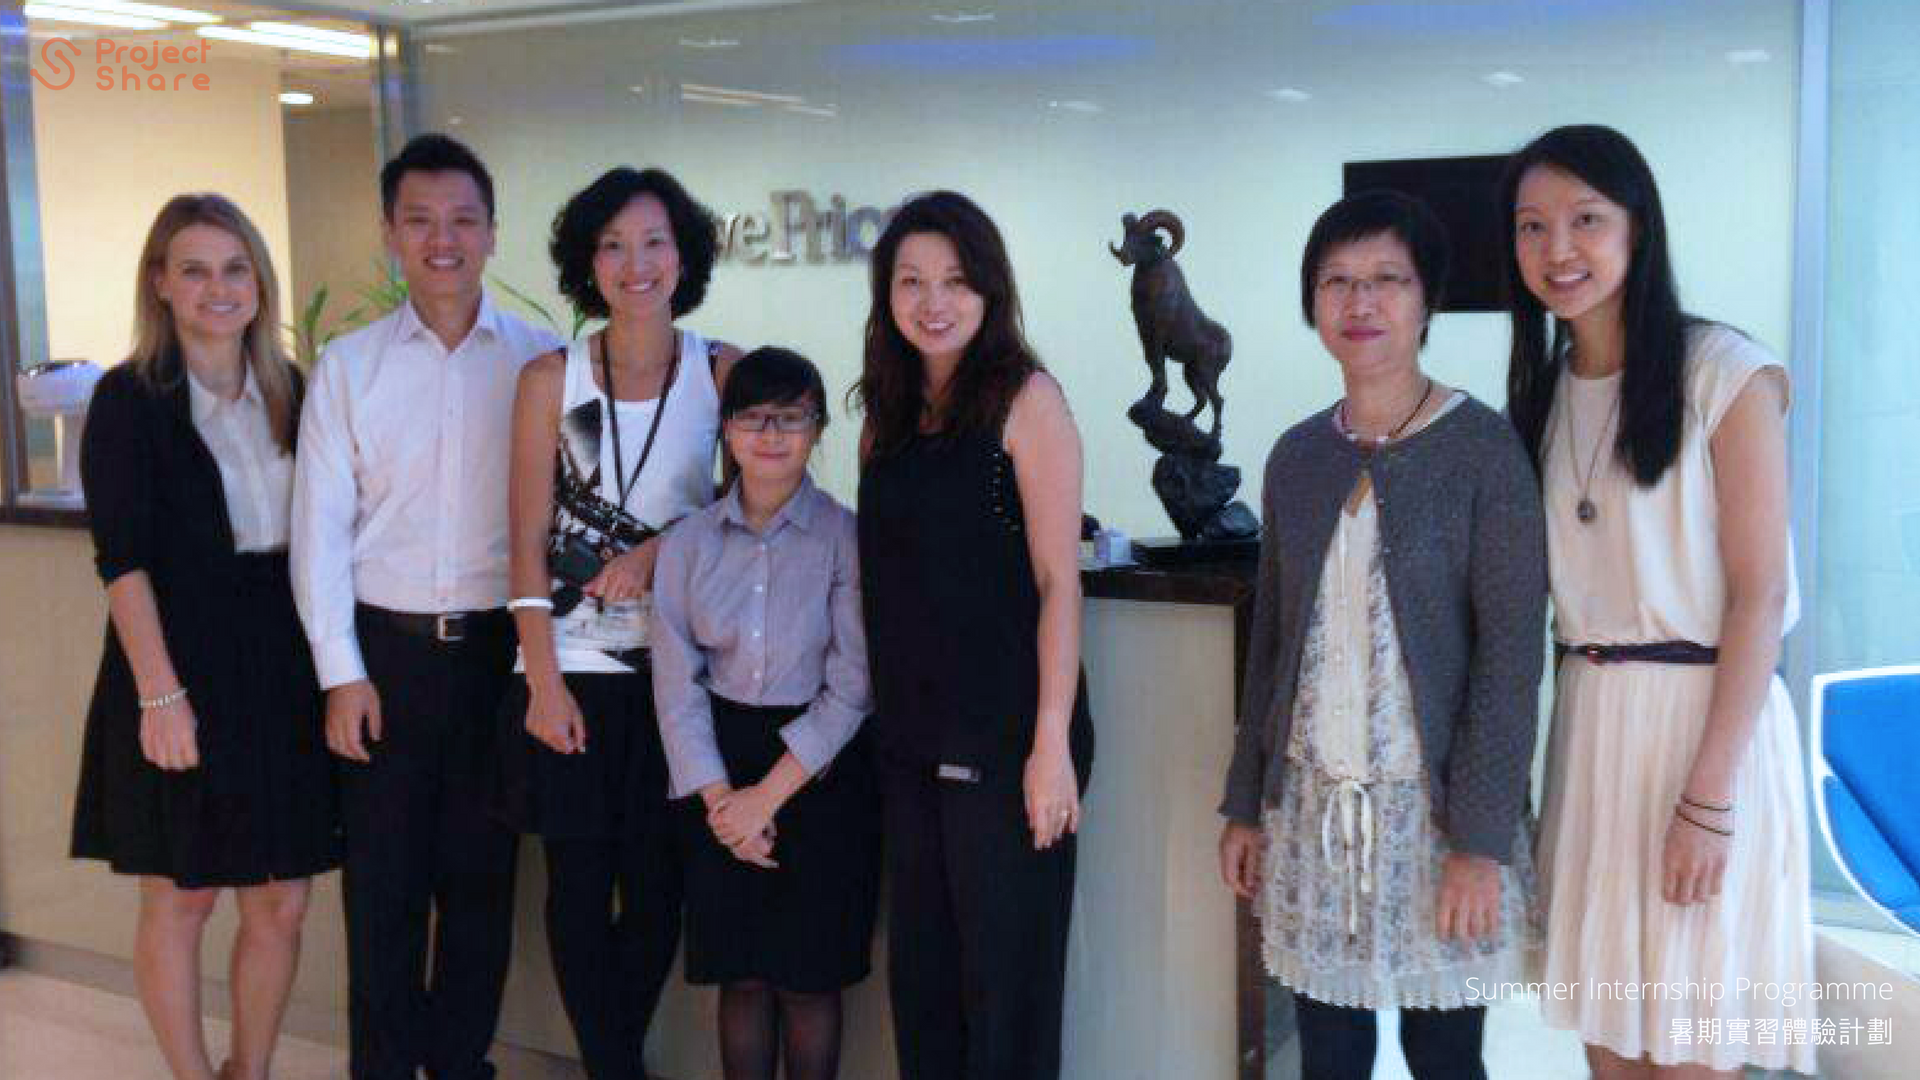 Participants at T. Rowe Price take group photo with mentor and colleagues.